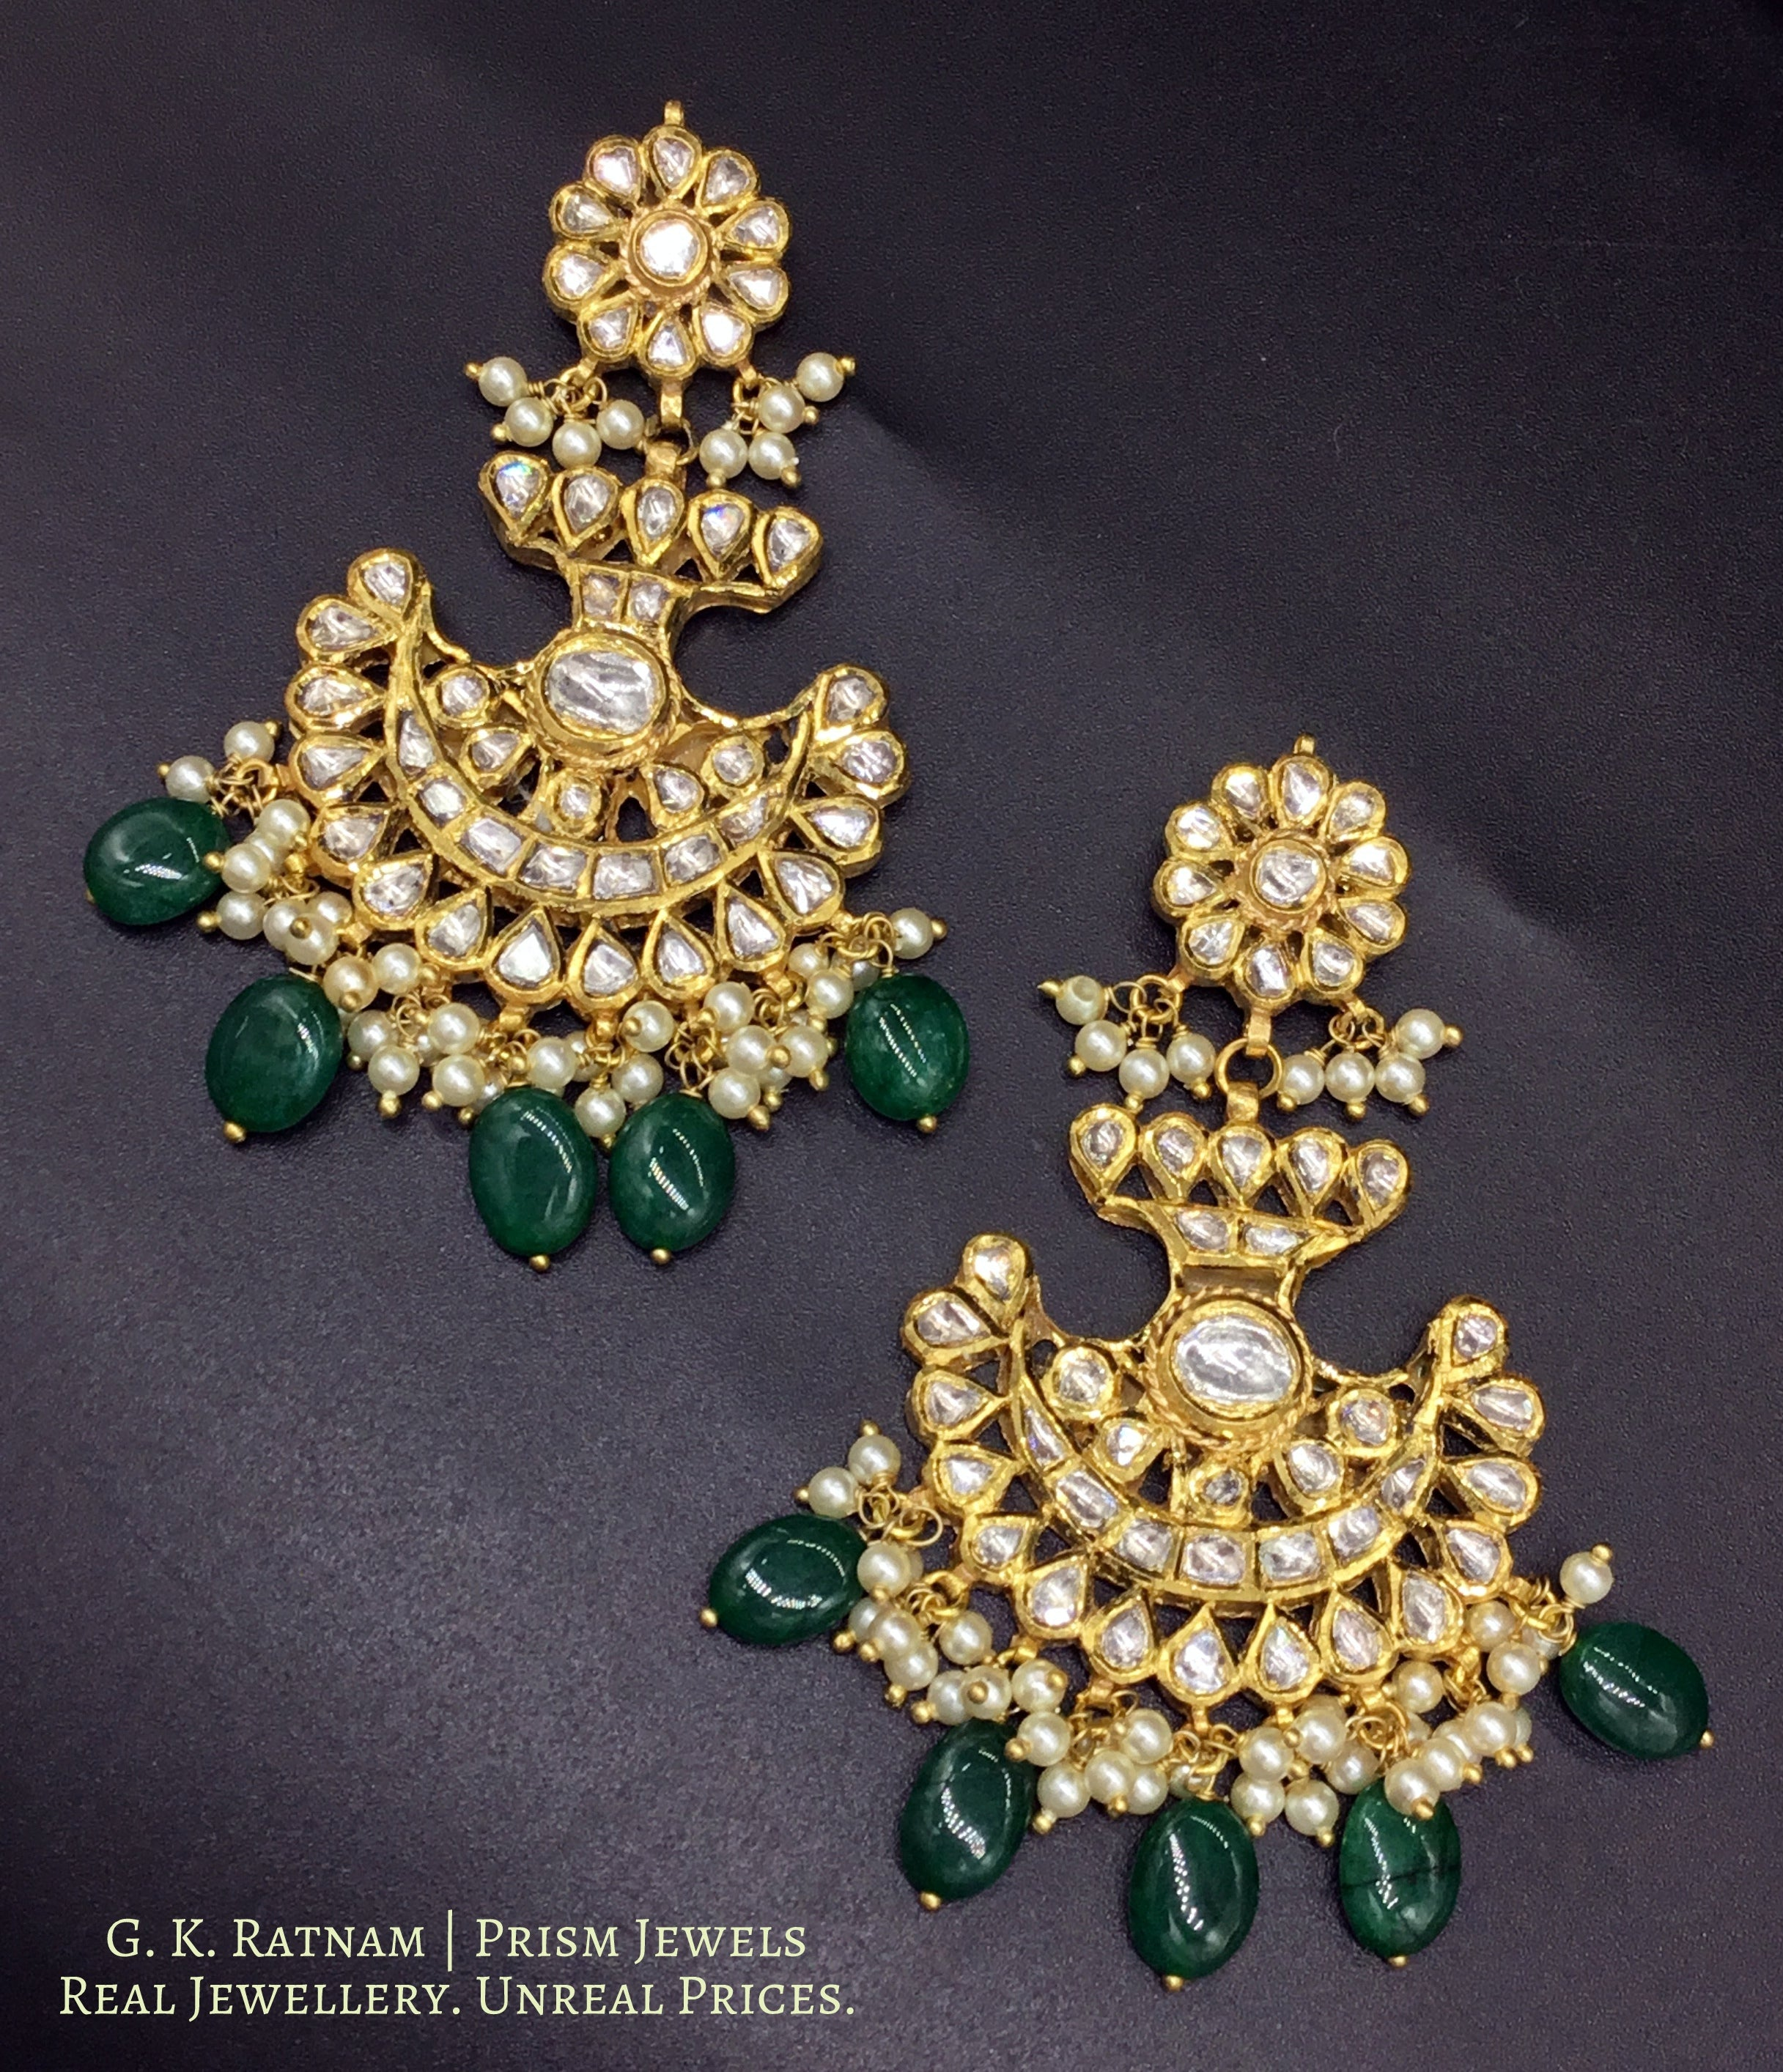 18k Gold and Diamond Polki Pankhi (fan) Pendant Set with beryl and pearl chains - gold diamond polki kundan meena jadau jewellery